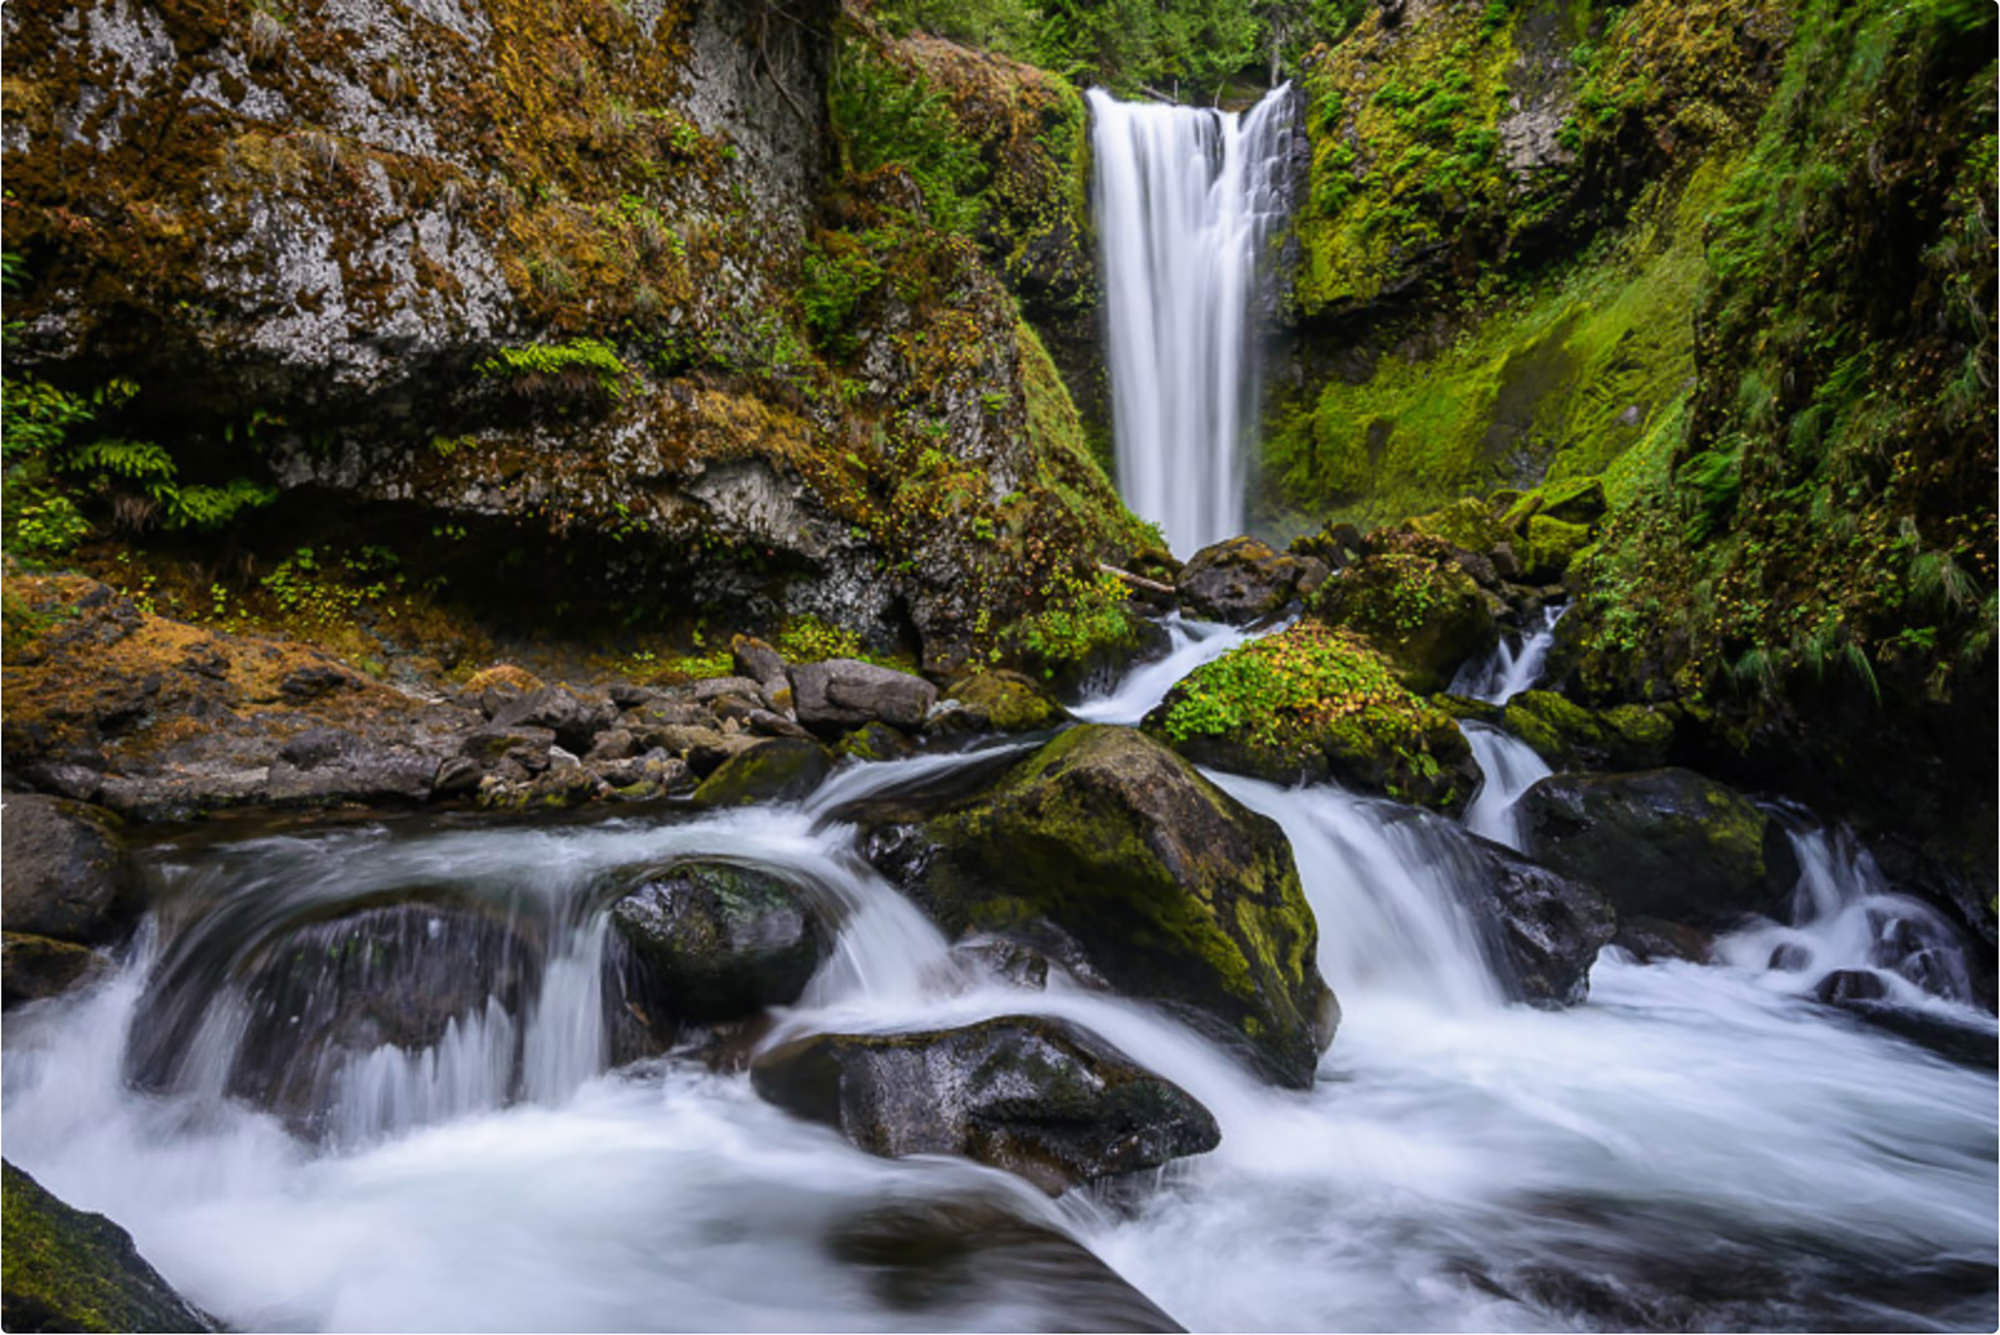 Falls Creek Falls - South Central Washington